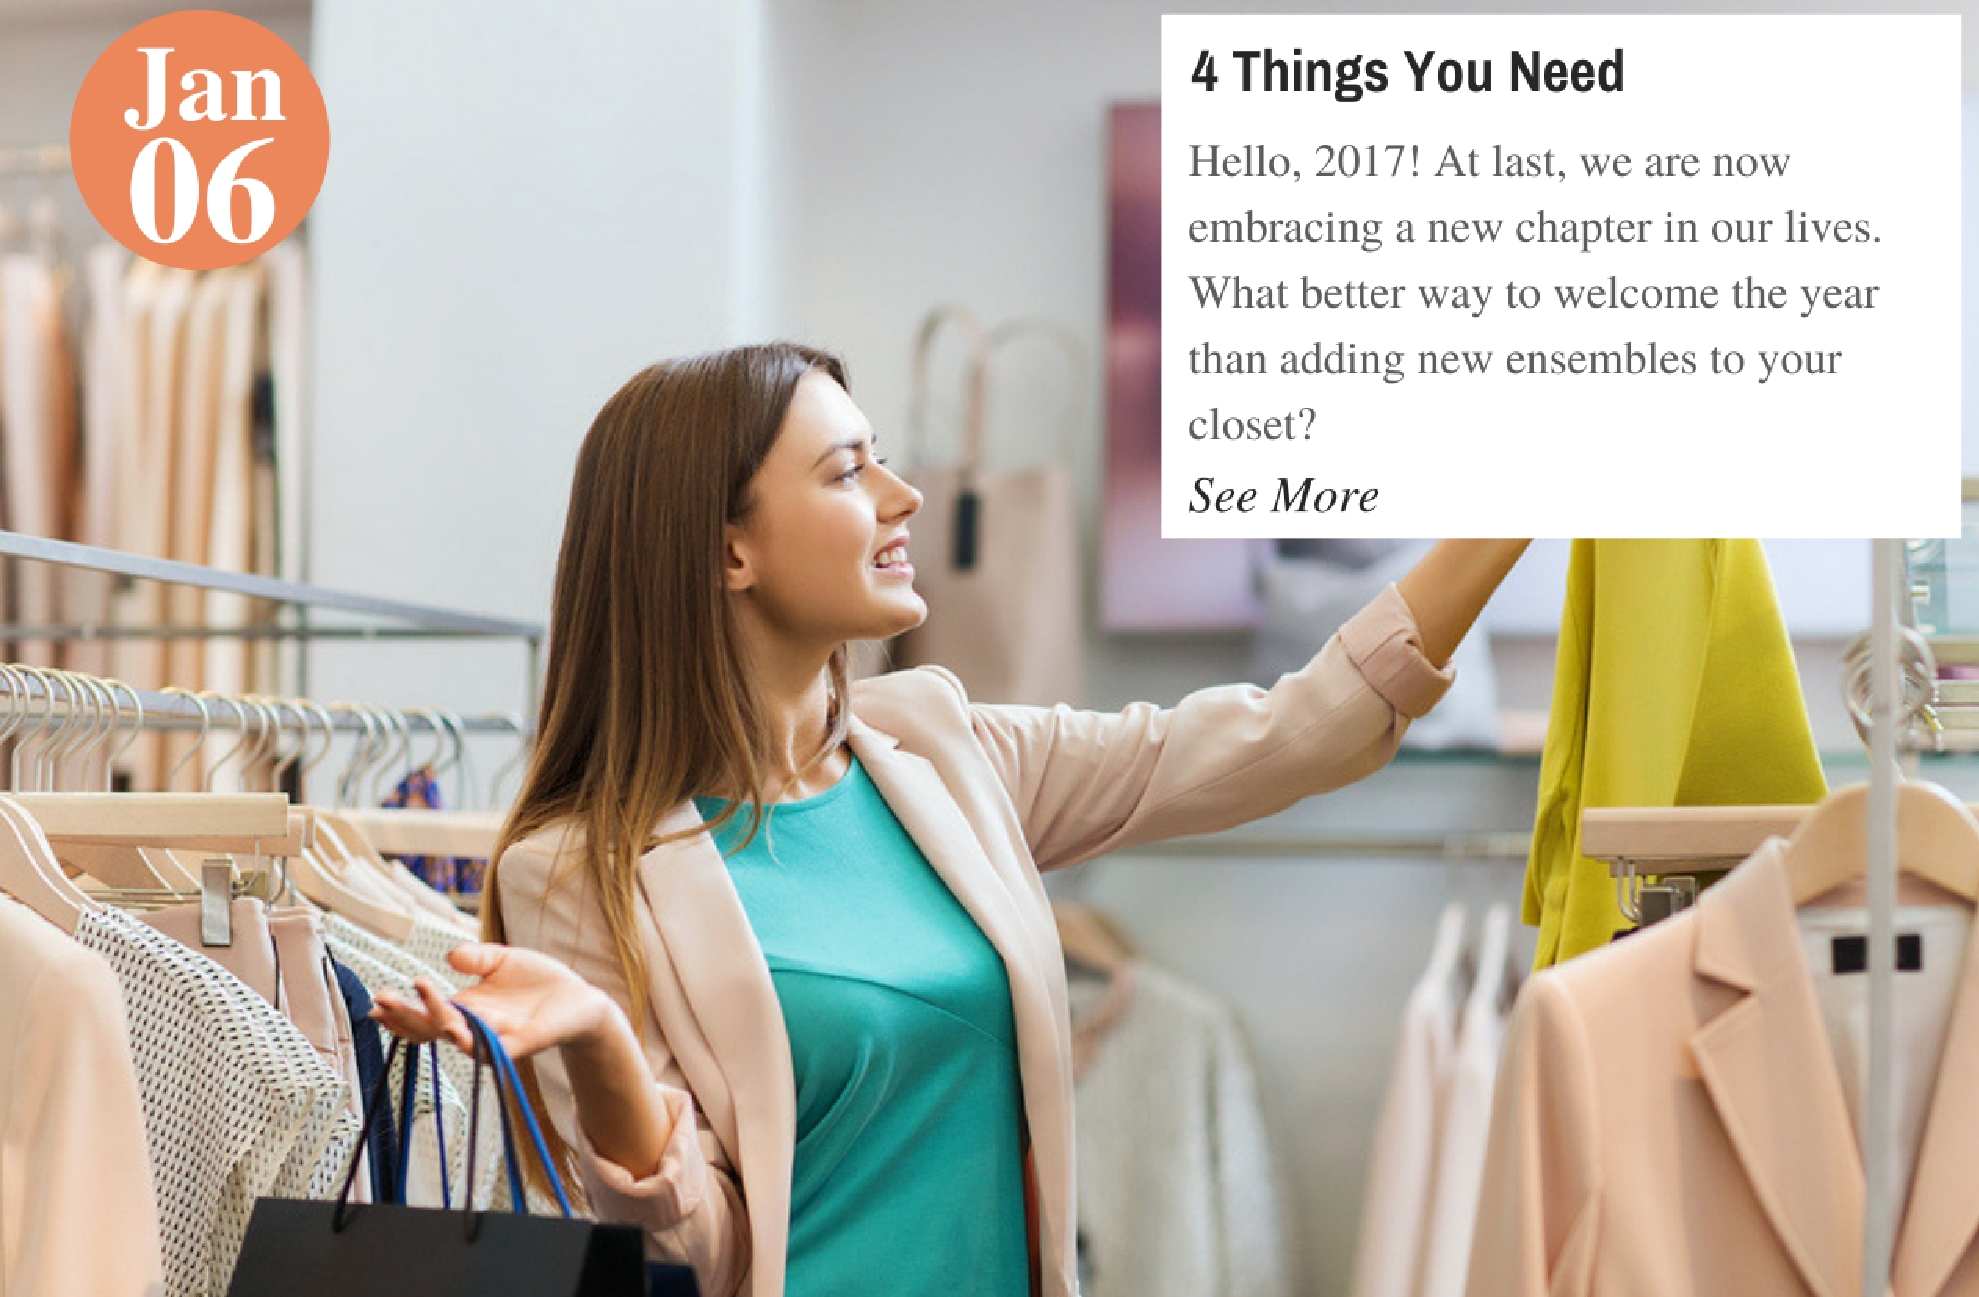 4 Things You Need